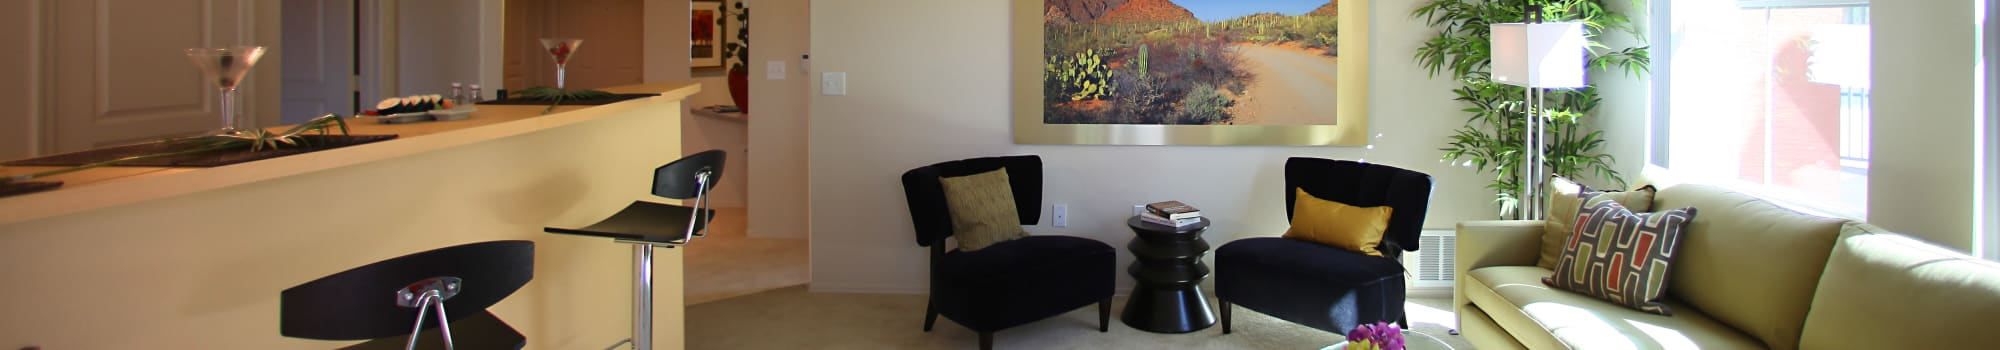 Resident information at Sage Luxury Apartment Homes in Phoenix, Arizona